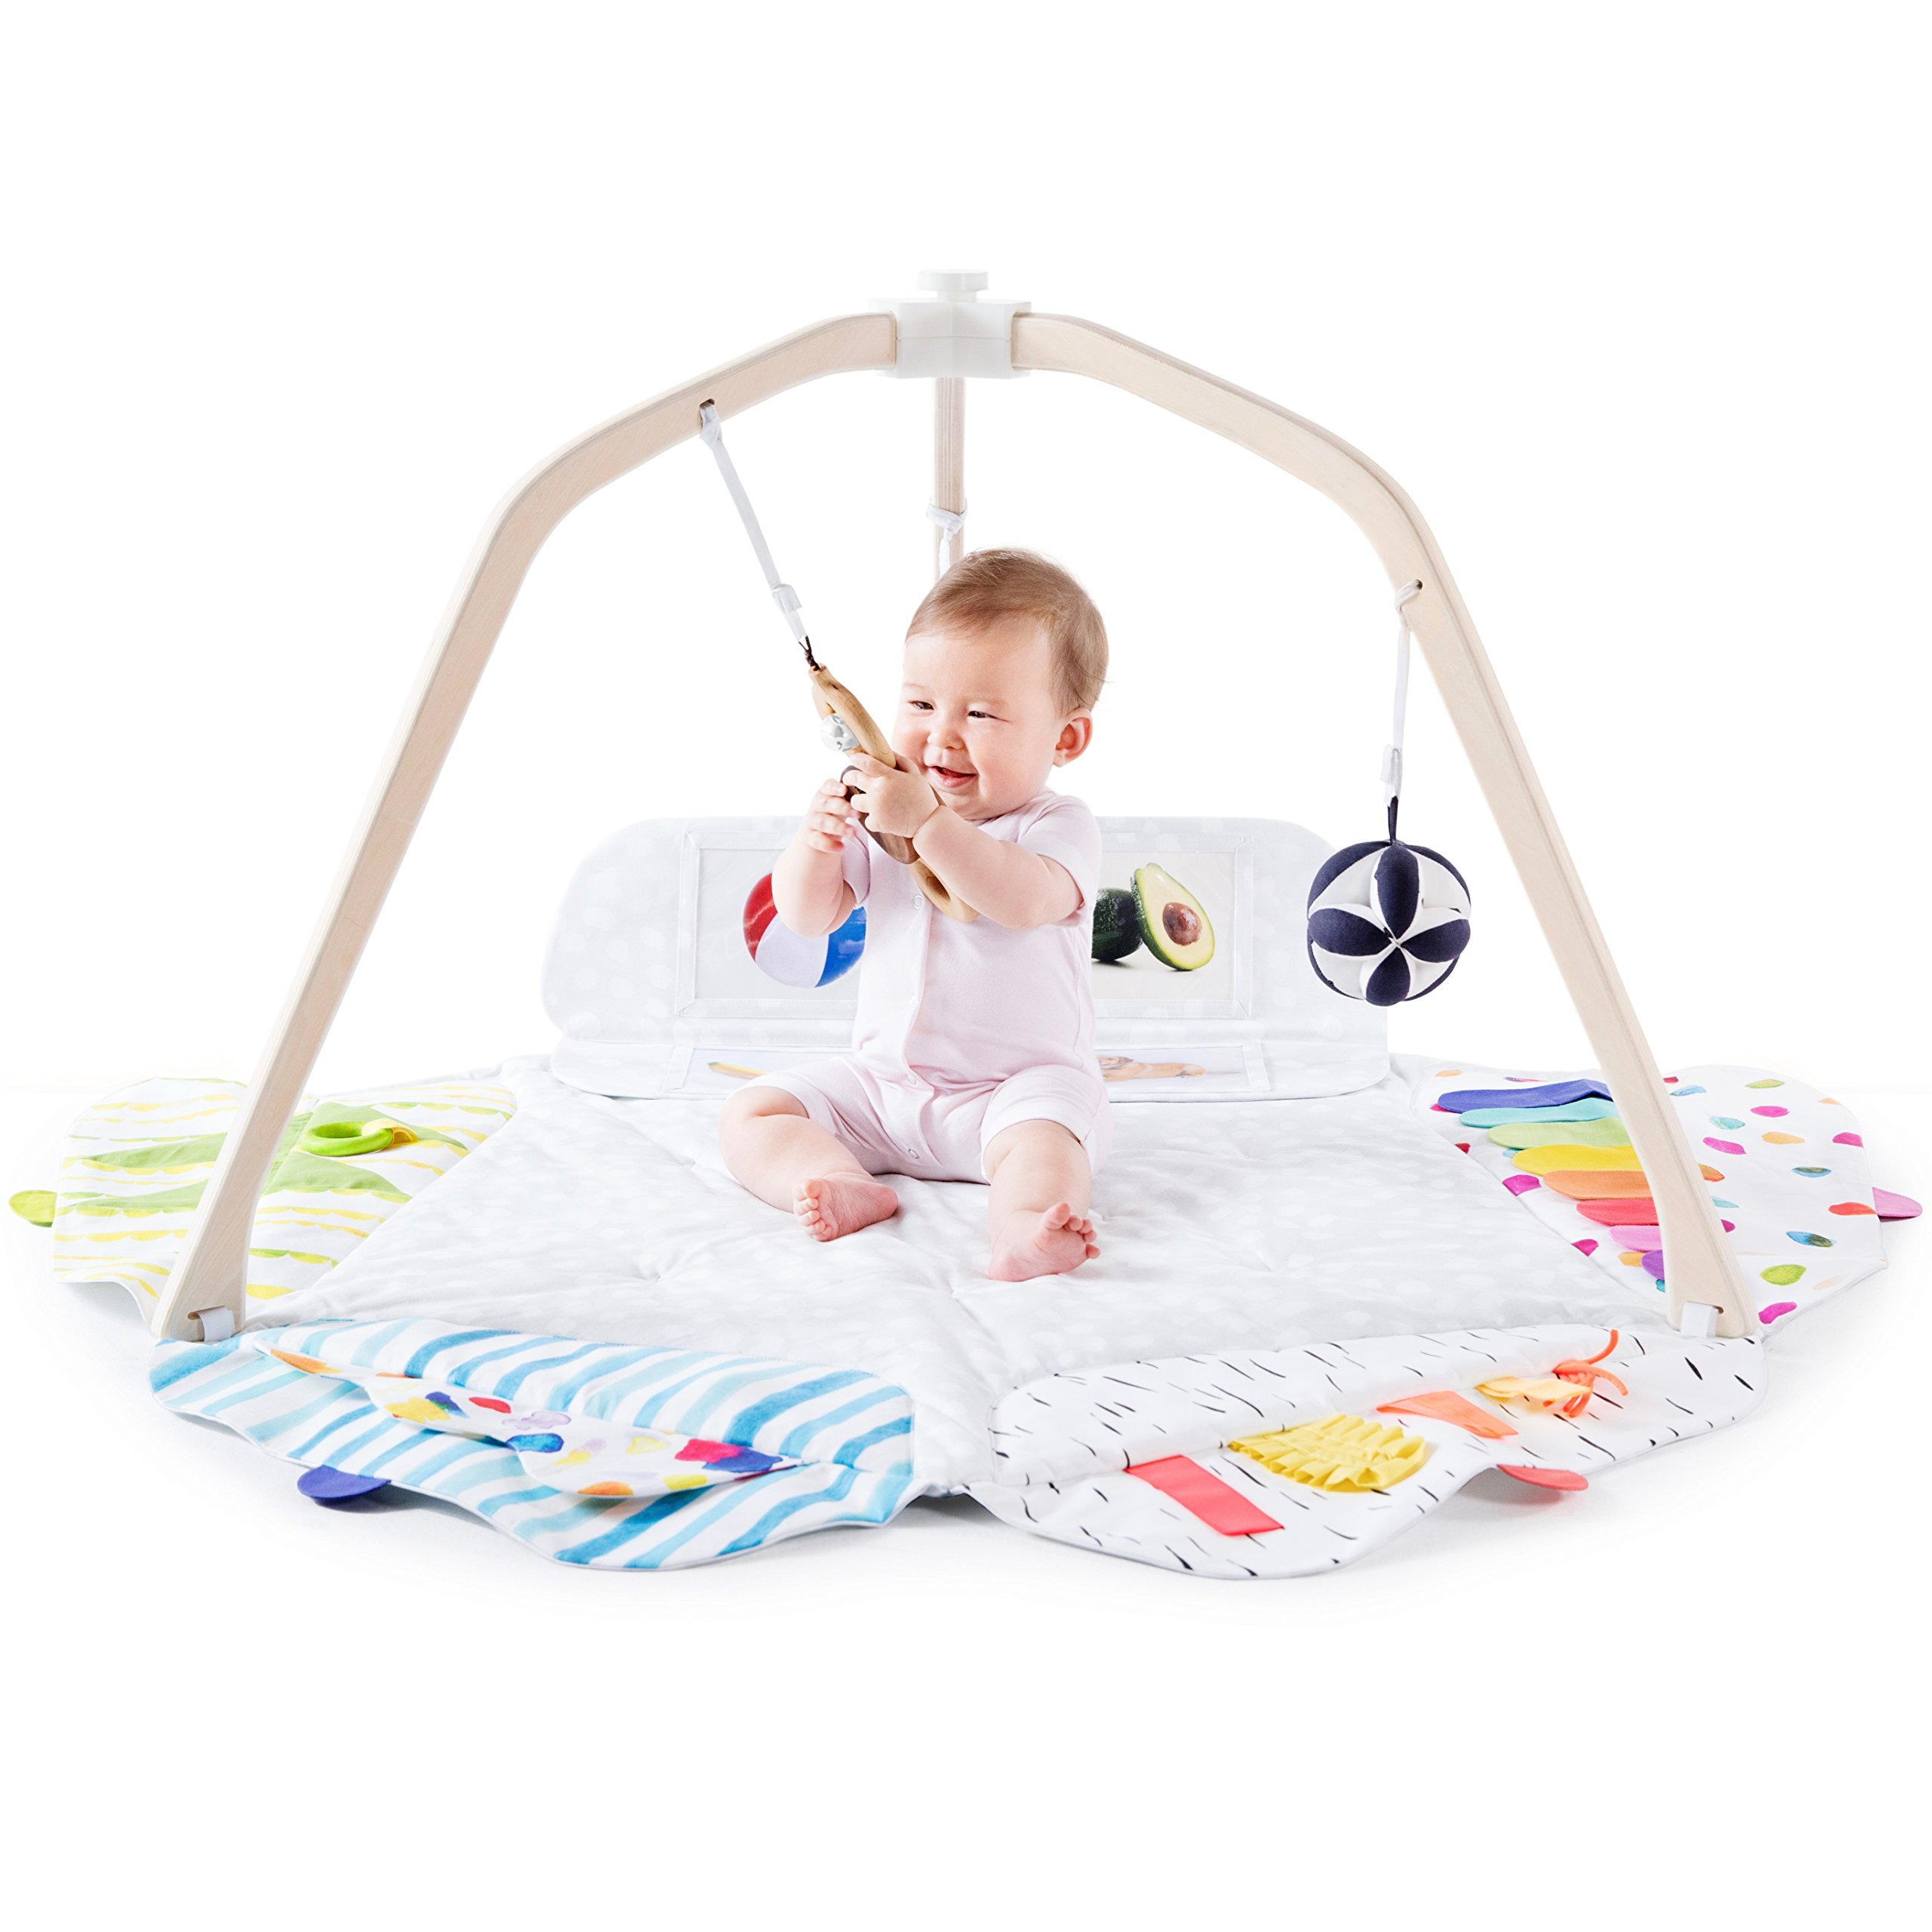 The Play Gym by Lovevery; Stage-Based Developmental Activity Gym & Play Mat for Baby to Toddler by Lovevery (Image #1)